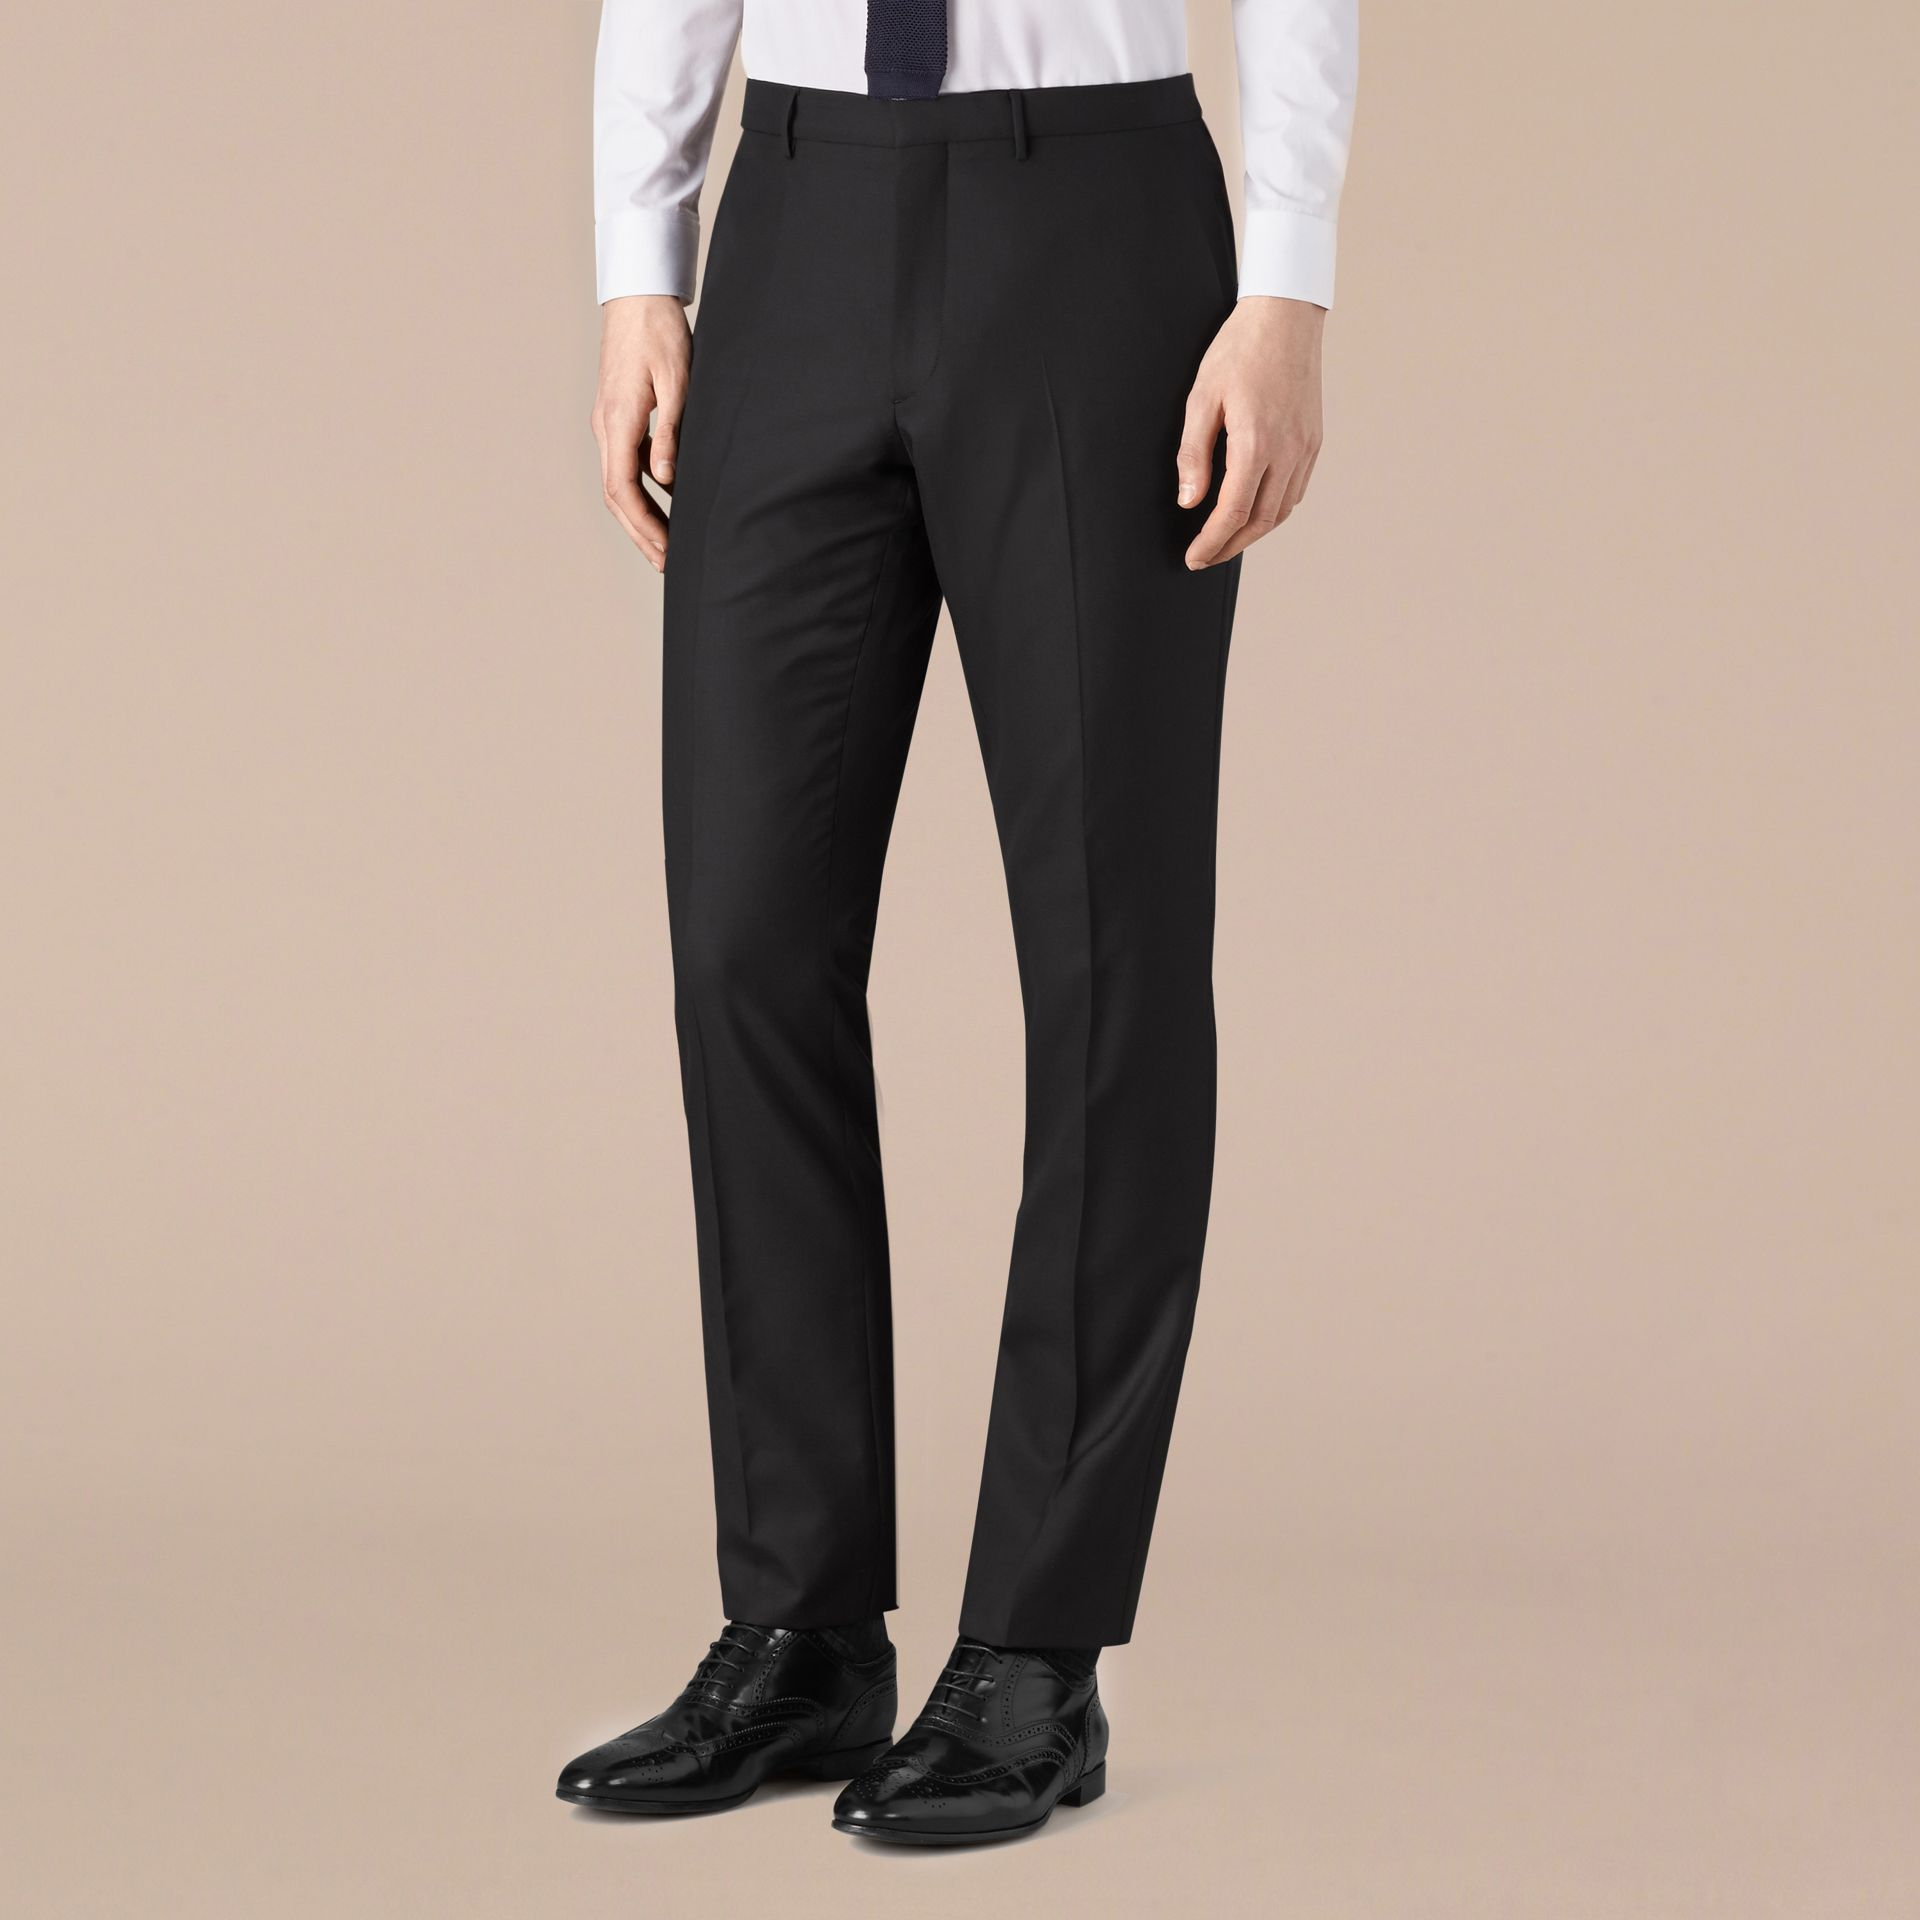 Black Modern Fit Wool Trousers Black - gallery image 1